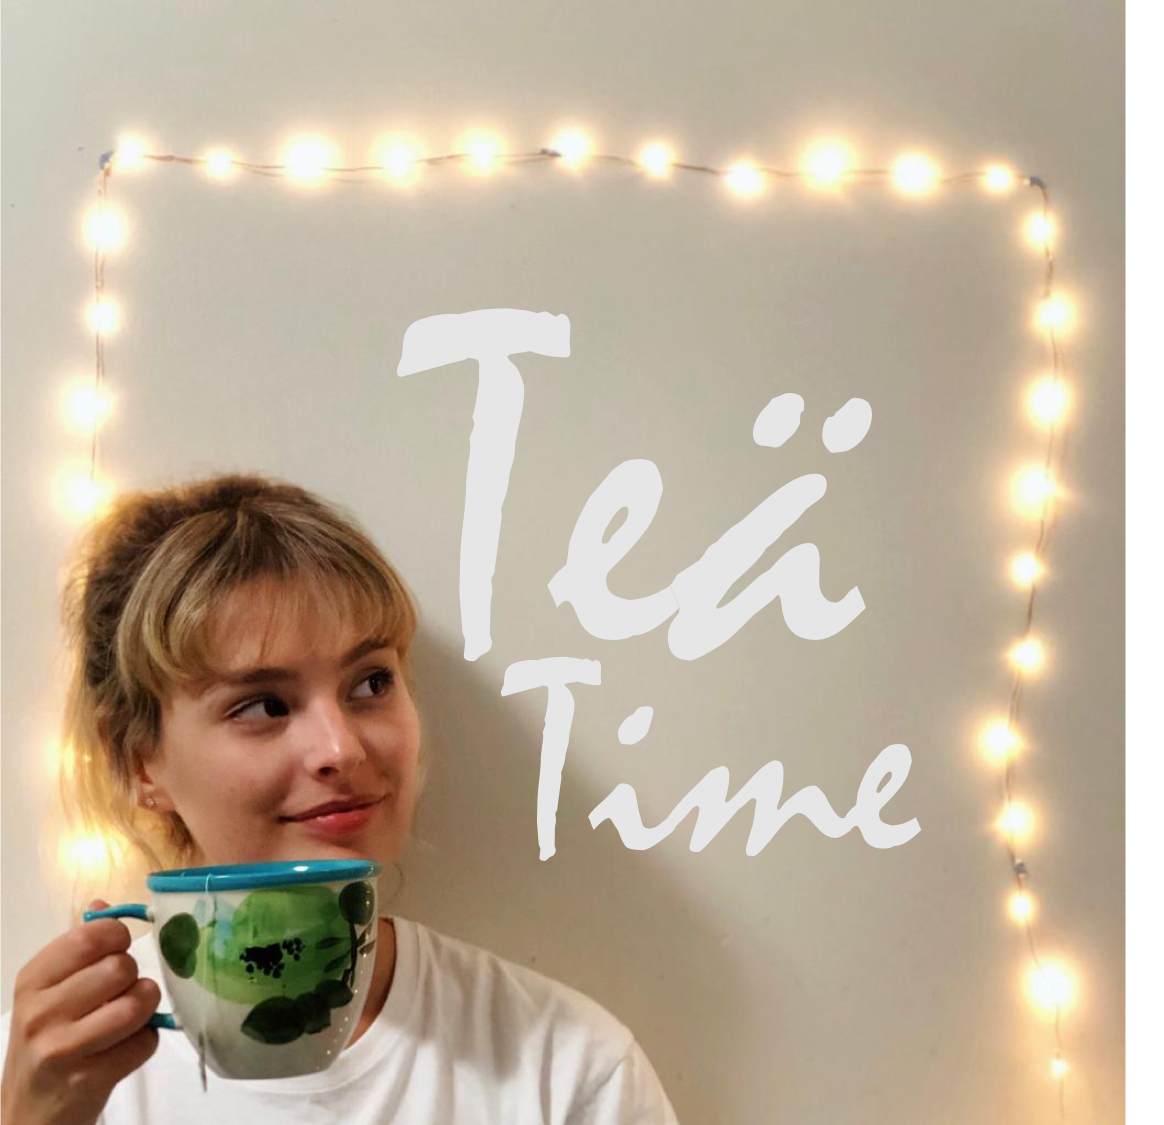 Tea Time - Welcome to Teä Time! Drawing on the traditional English ritual of a cup of tea and a good chat, every week I'll be talking to a different international student here at UBCO about their life and adventures here in Canada. Tune in to hear humorous (and semi-intellectual) discussions on contemporary issues and news from all around the world.